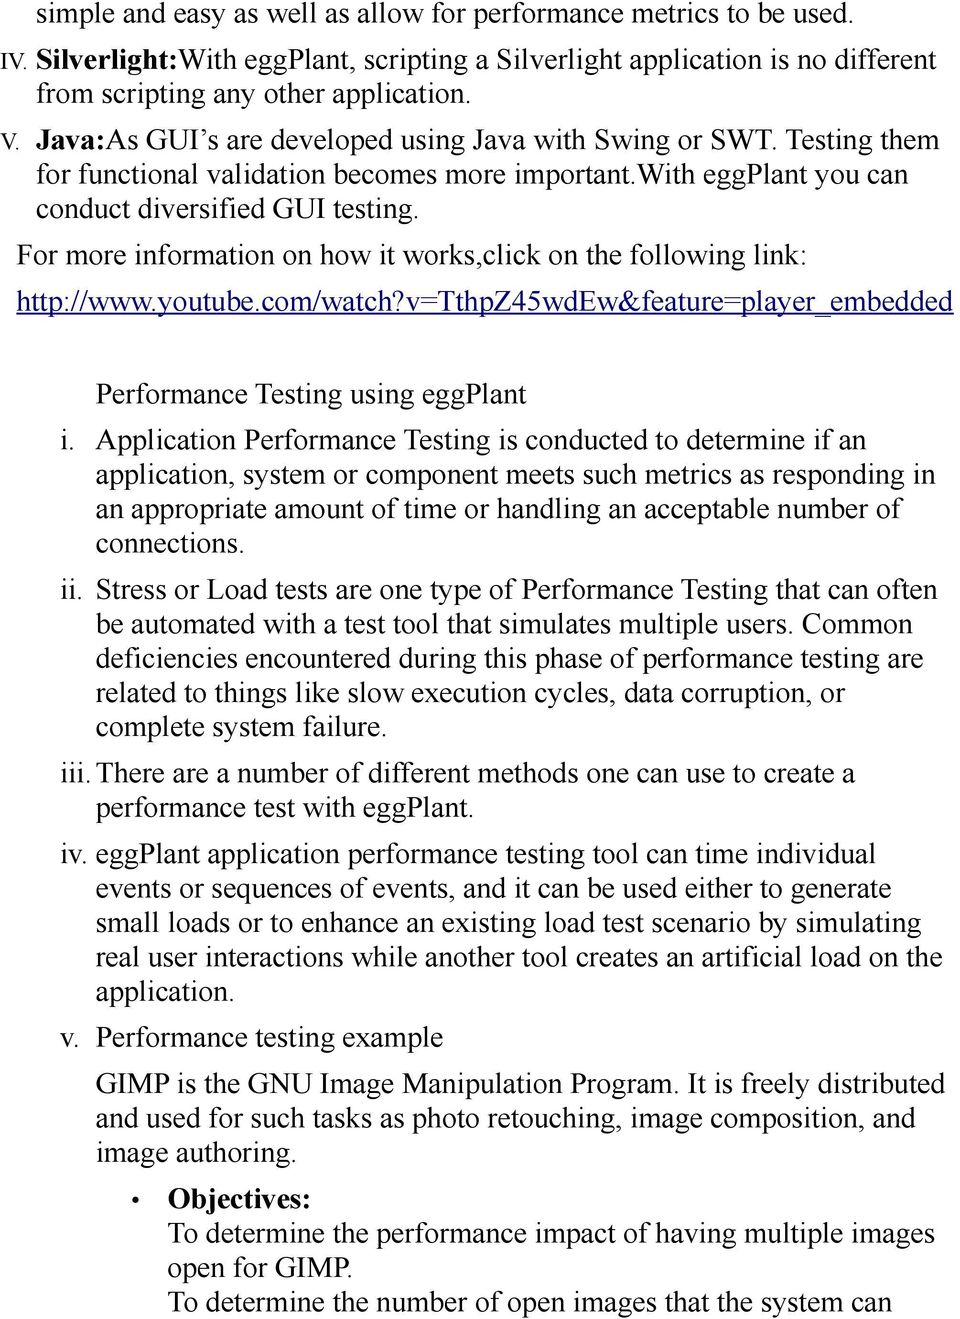 For more information on how it works,click on the following link: http://www.youtube.com/watch?v=tthpz45wdew&feature=player_embedded Performance Testing using eggplant i.